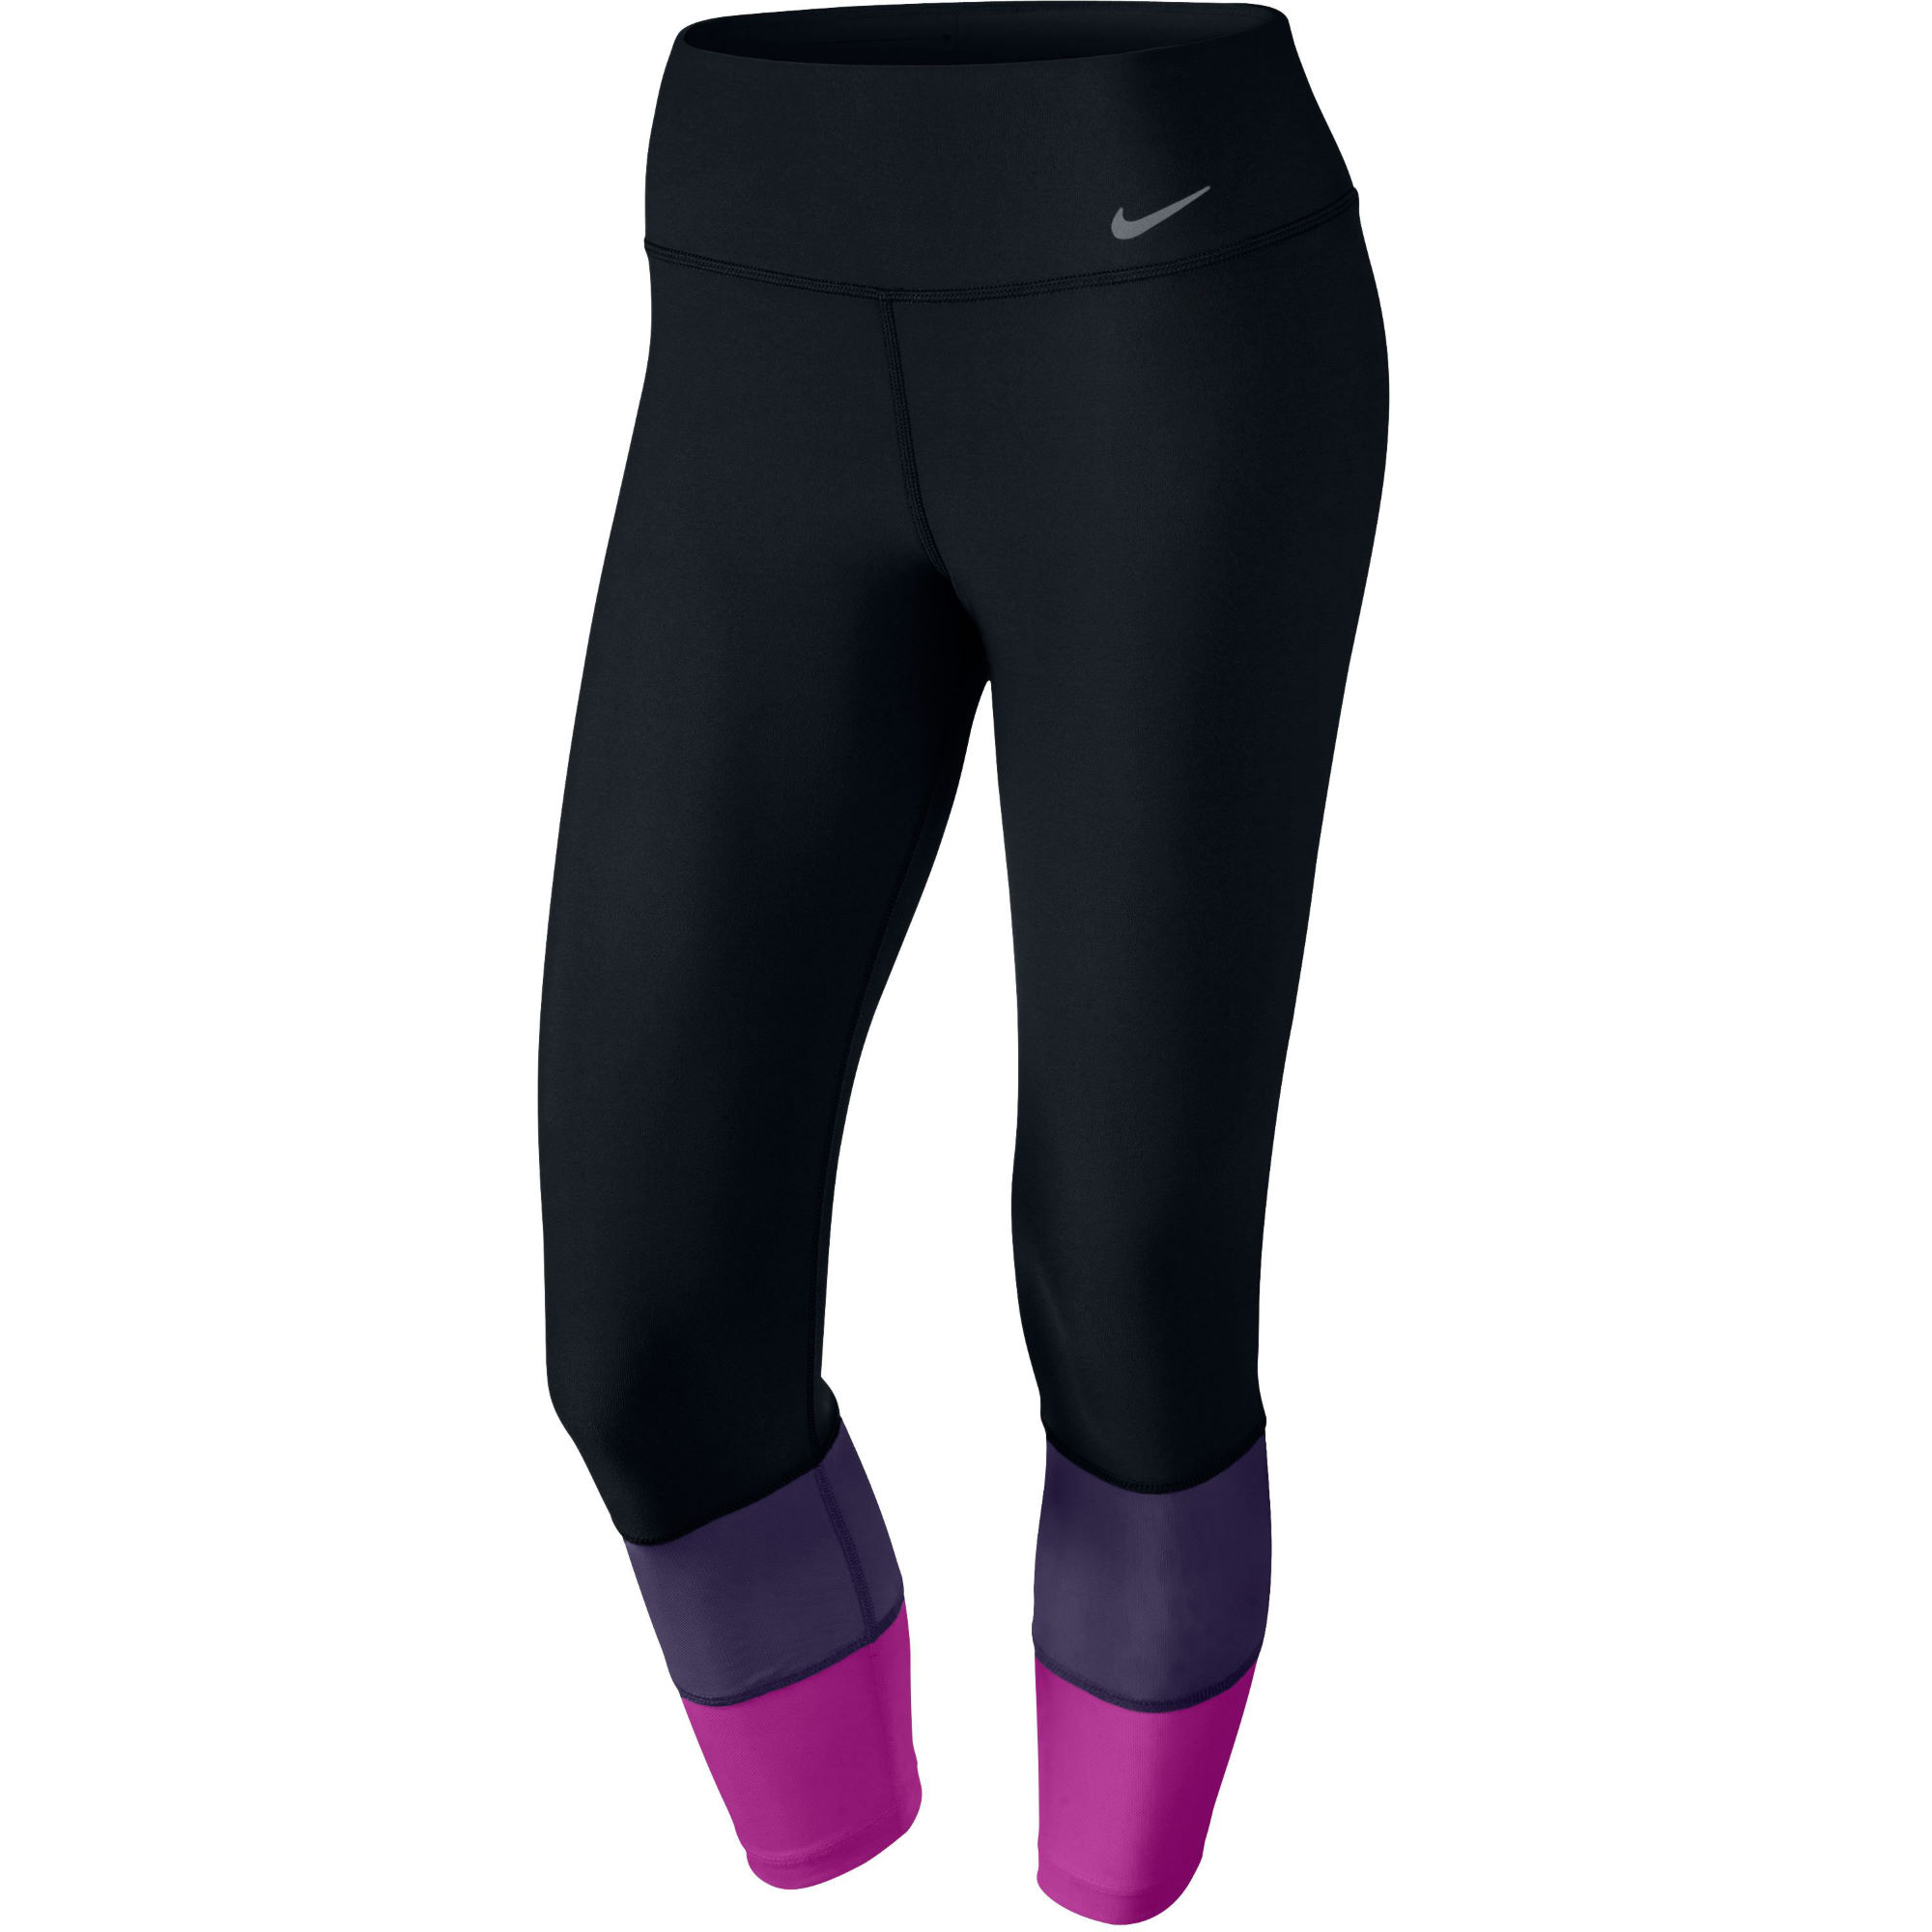 709a739f7f2d43 Wiggle Cycle To Work | Nike Women's Legend 2.0 Tight Poly Veneer ...